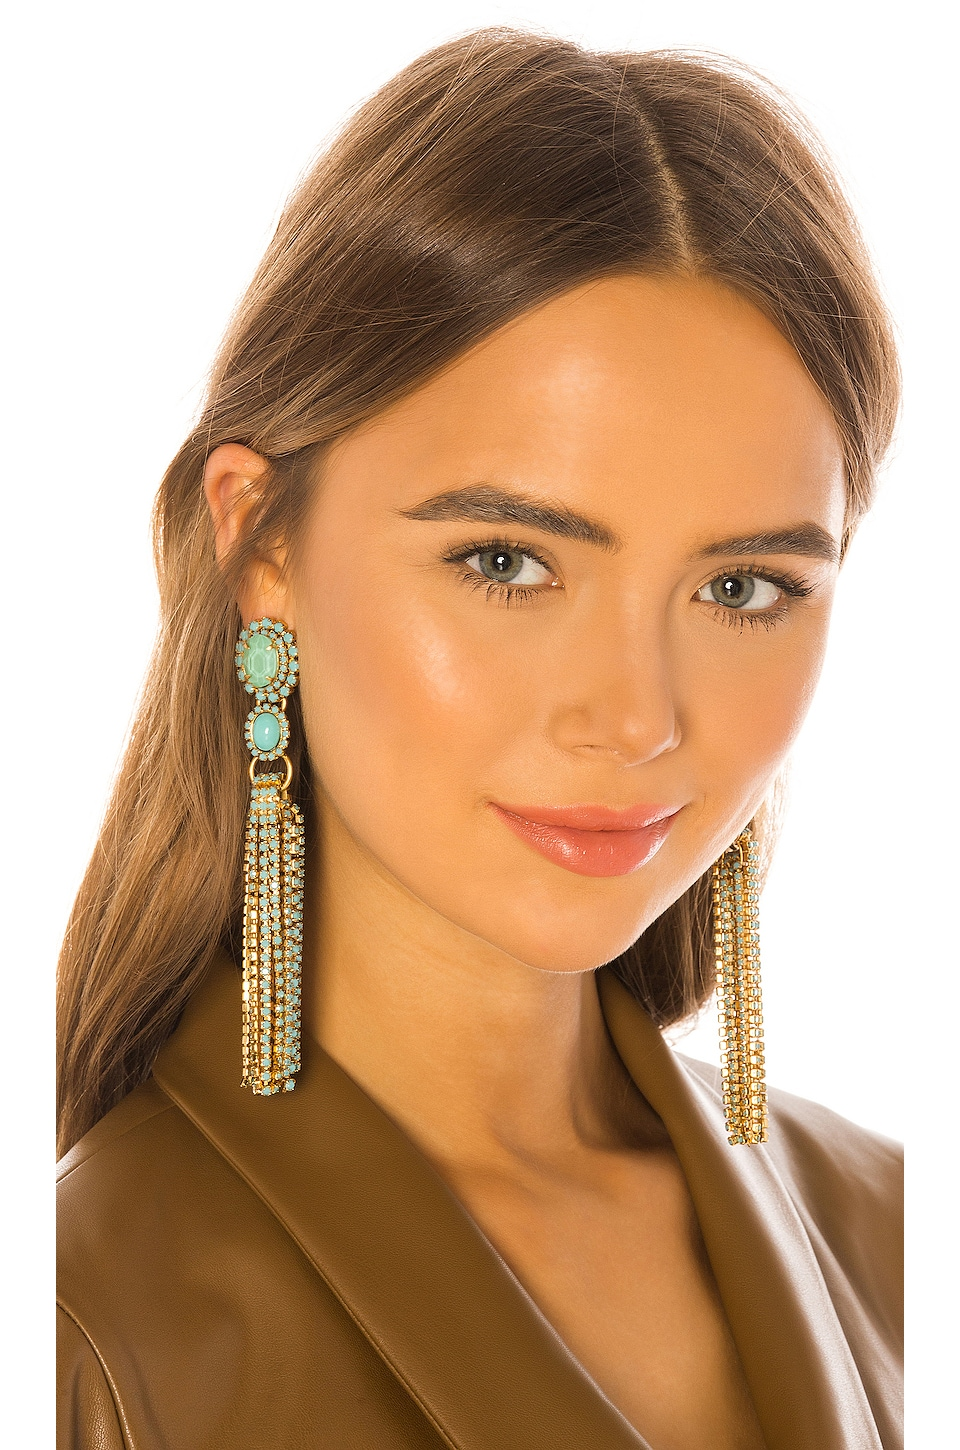 Elizabeth Cole Tina Earrings in Turquoise